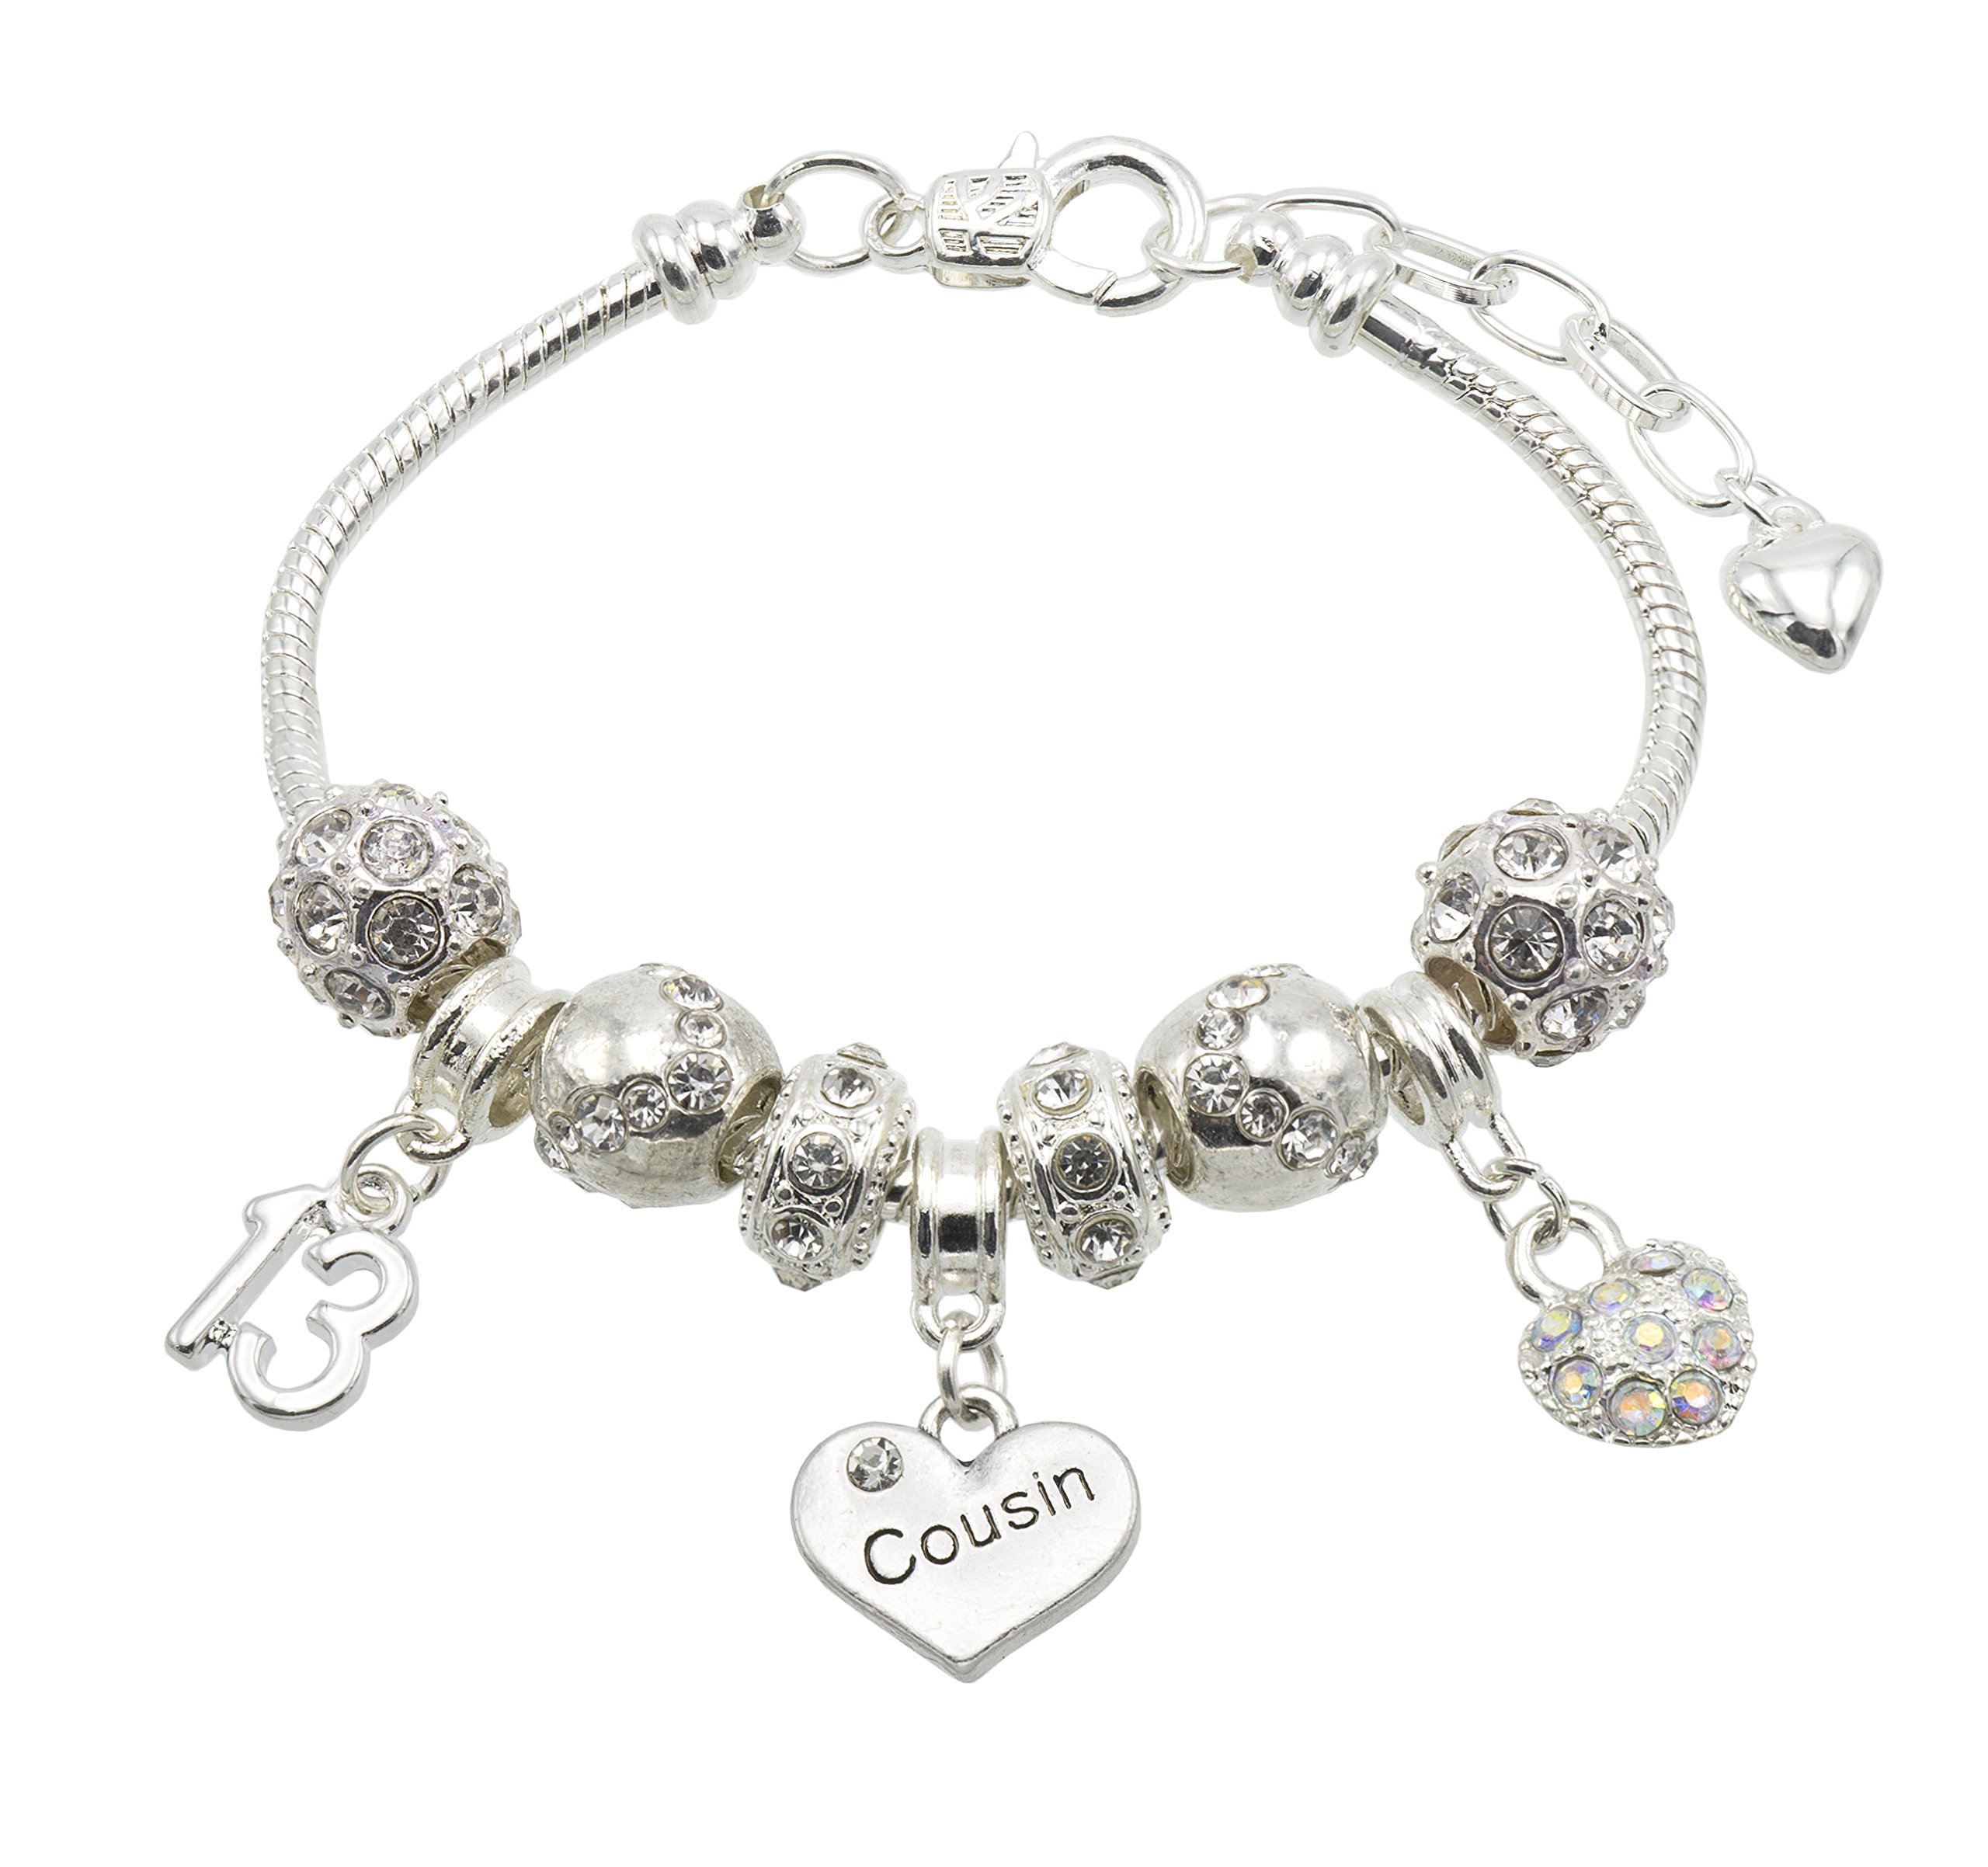 Cousin Birthday Charm Bracelet with Gift Box – Ages Available 13, 15, 16, 18, 20, 21, 25, 30, 35, 40, 45 & 50